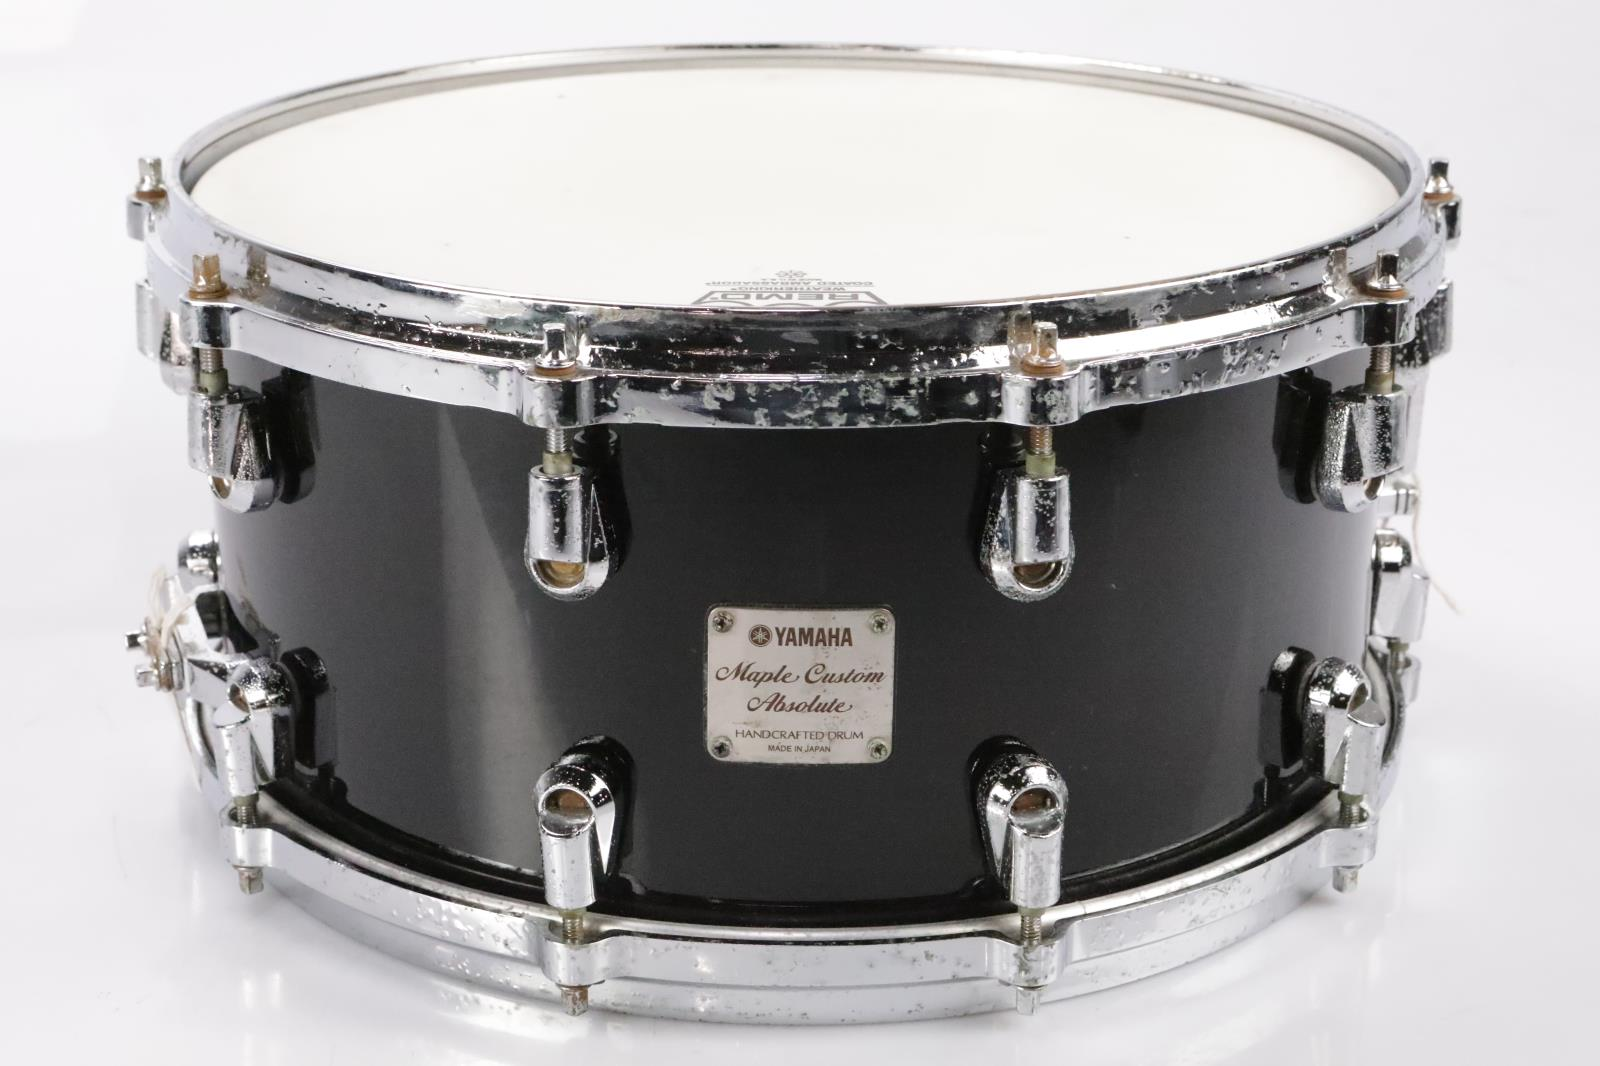 Yamaha 14x7 Maple Custom Absolute Snare Drum MIJ Japan Black #35014